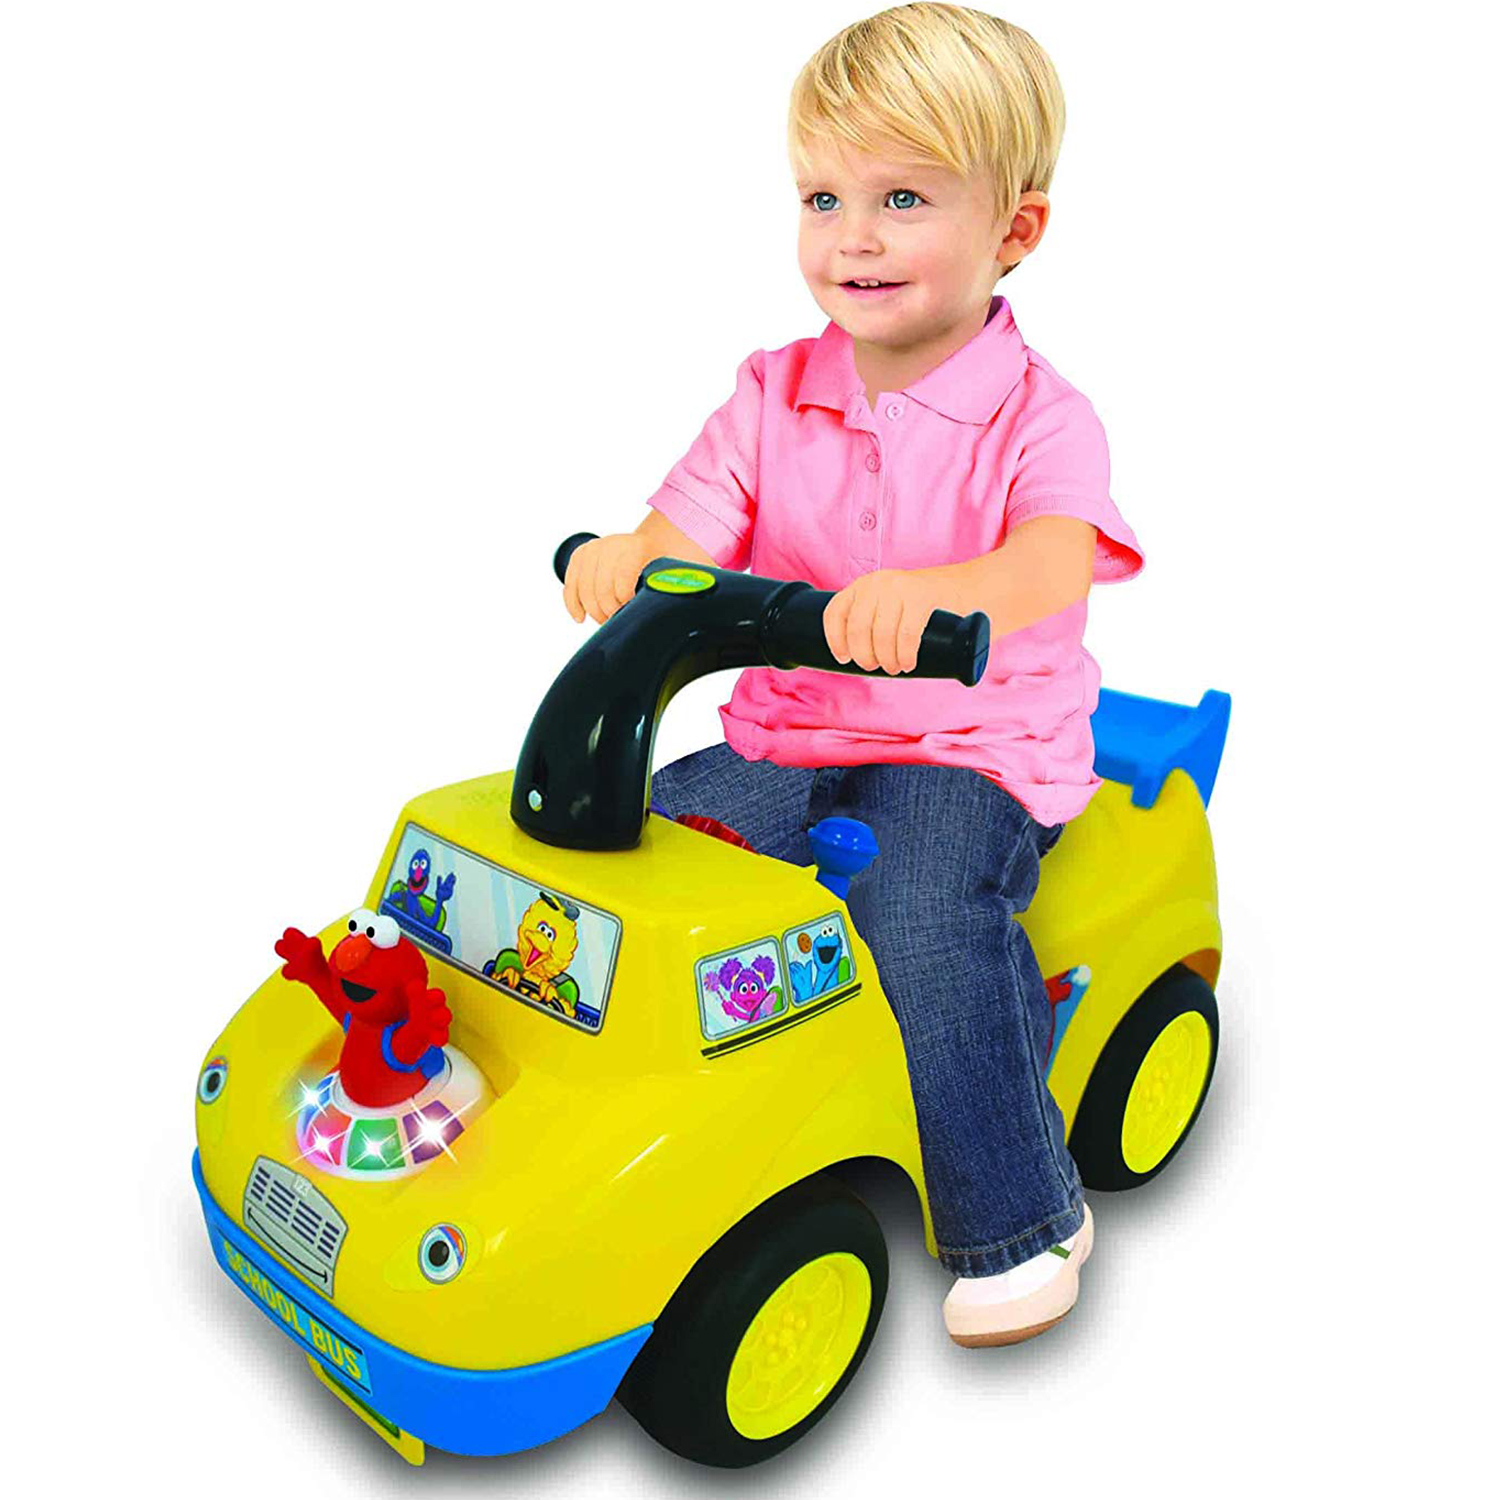 Baby Ride On Car Awesome toddler Ride On Baby Push Car School Bus Activity Play Fun toy Kids